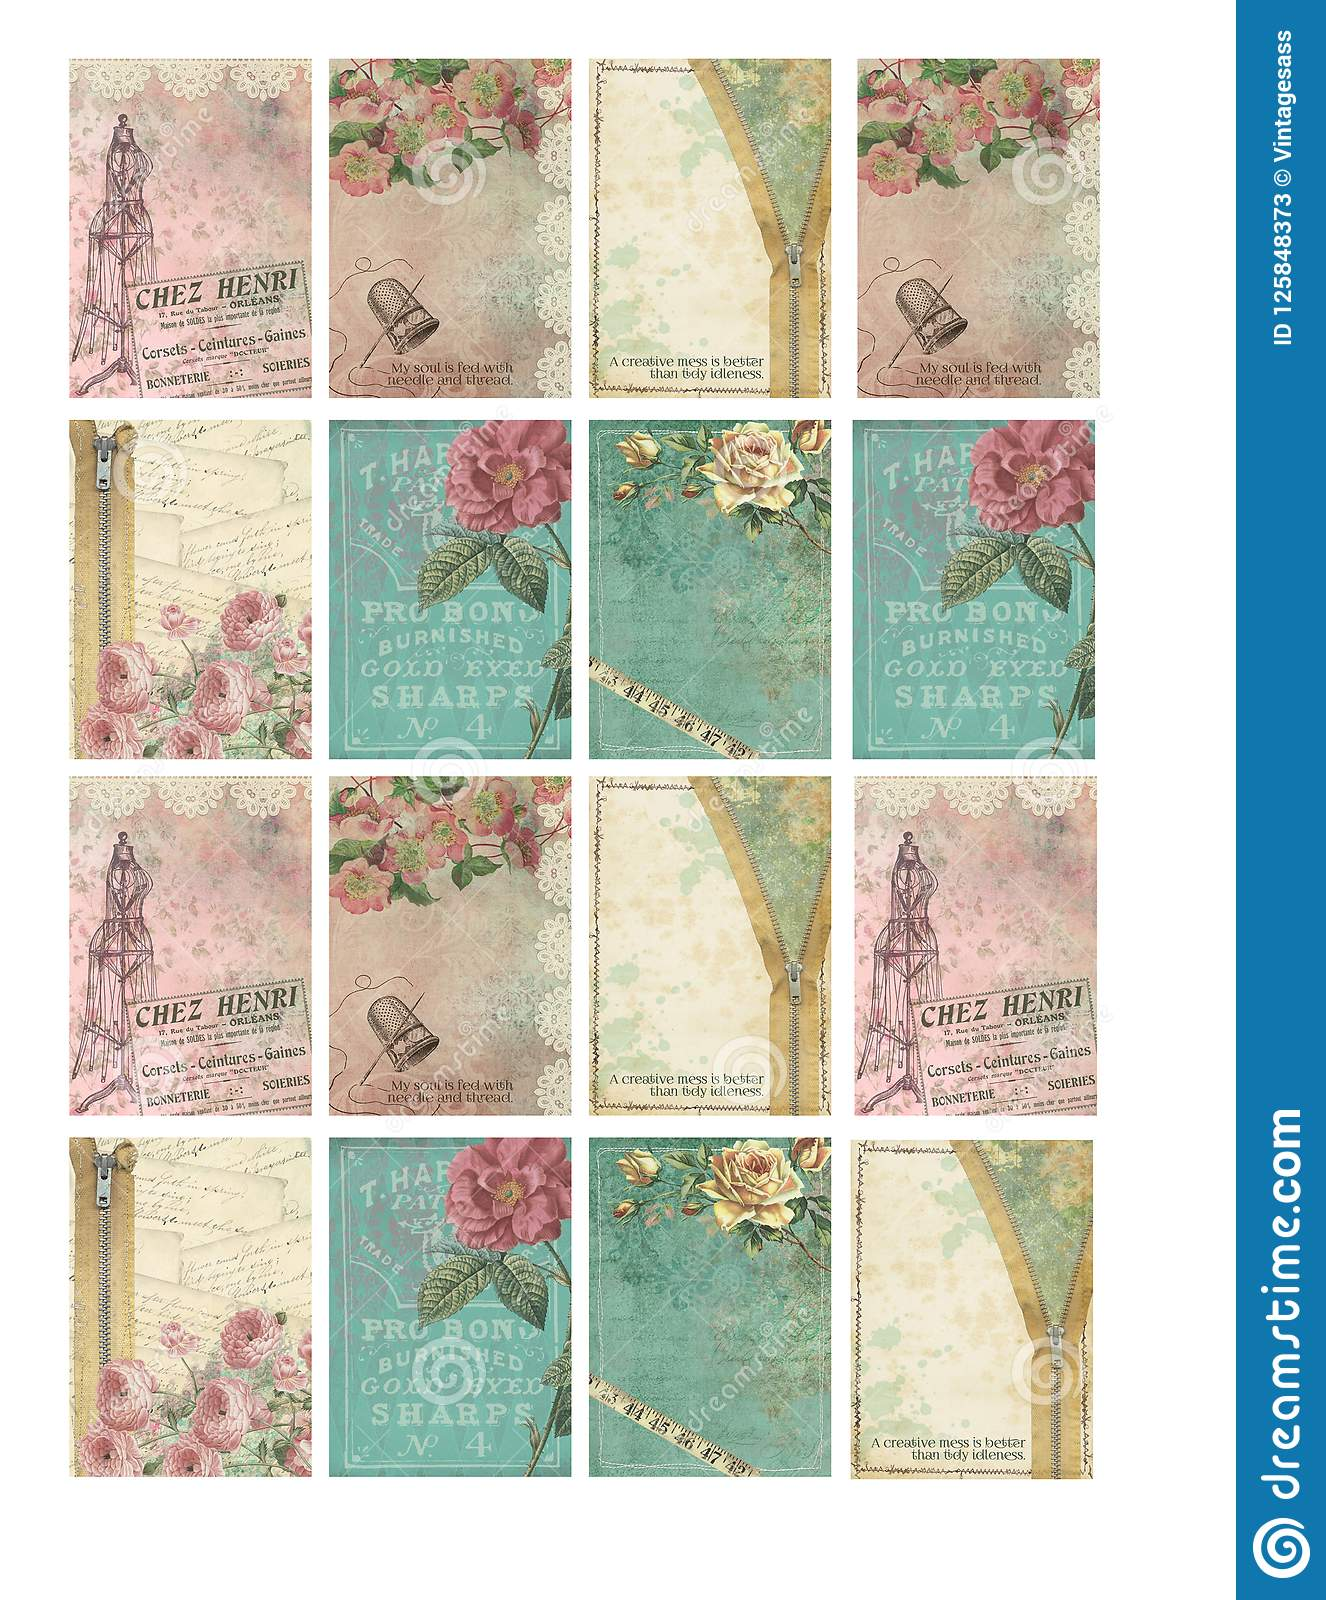 printable tag sheet vintage sewing notions stitchery journal cards